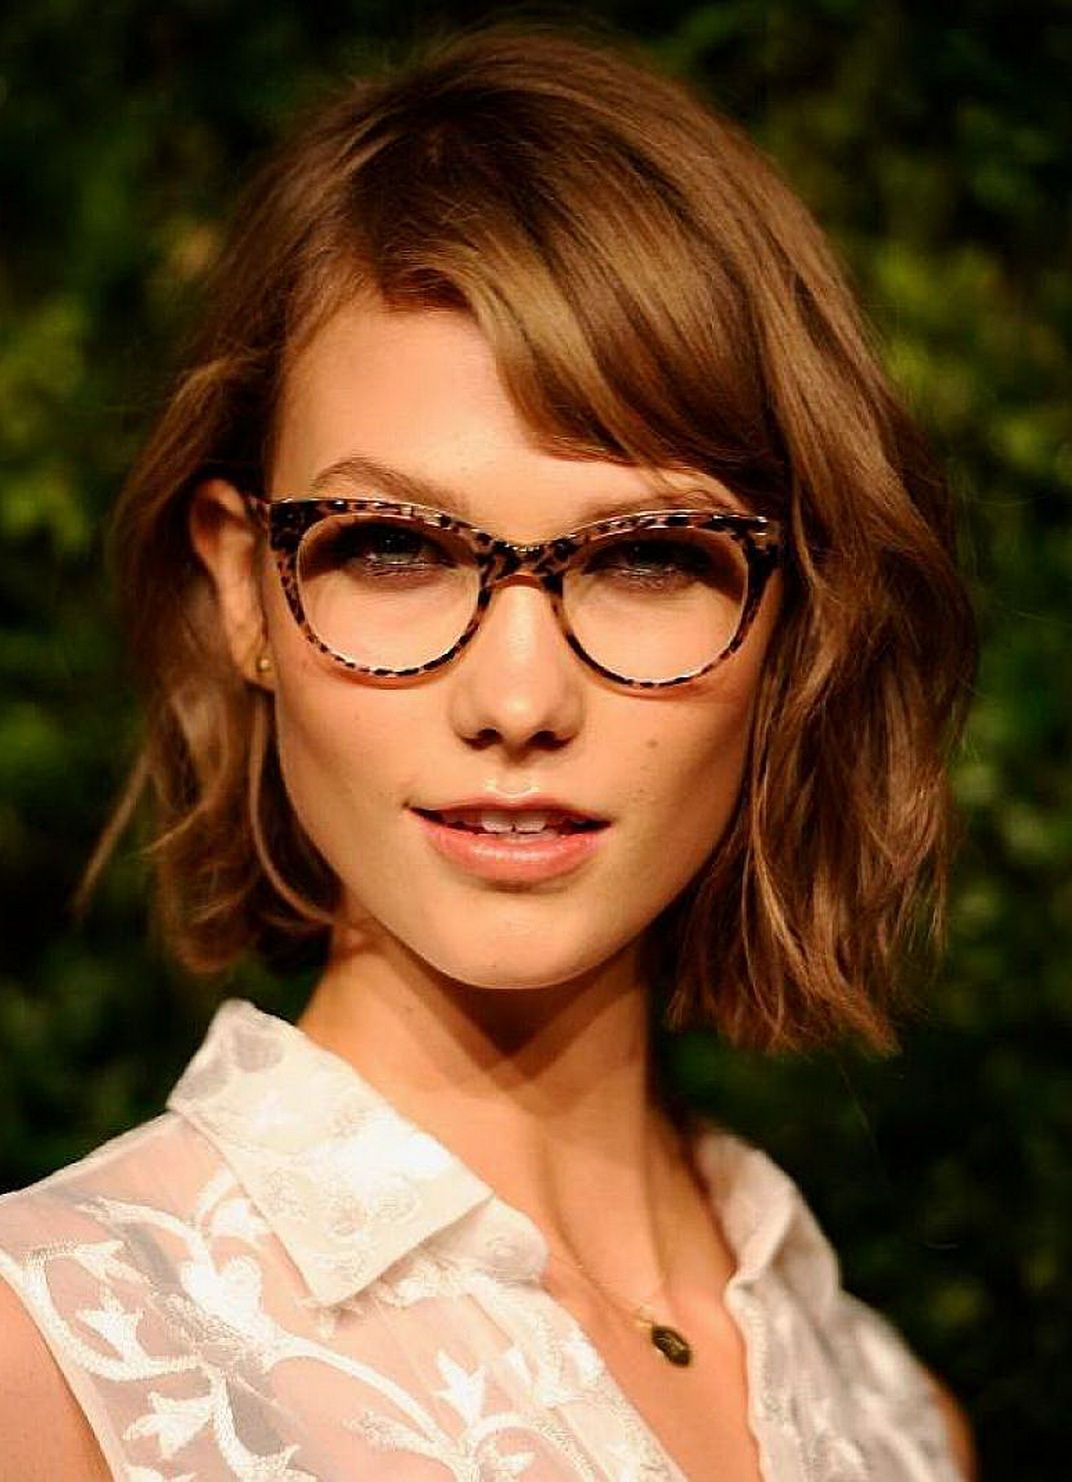 Short hairstyles with glasses - Best Wavy Short Hair Hairstyles With Side Bangs For Women With Glasses